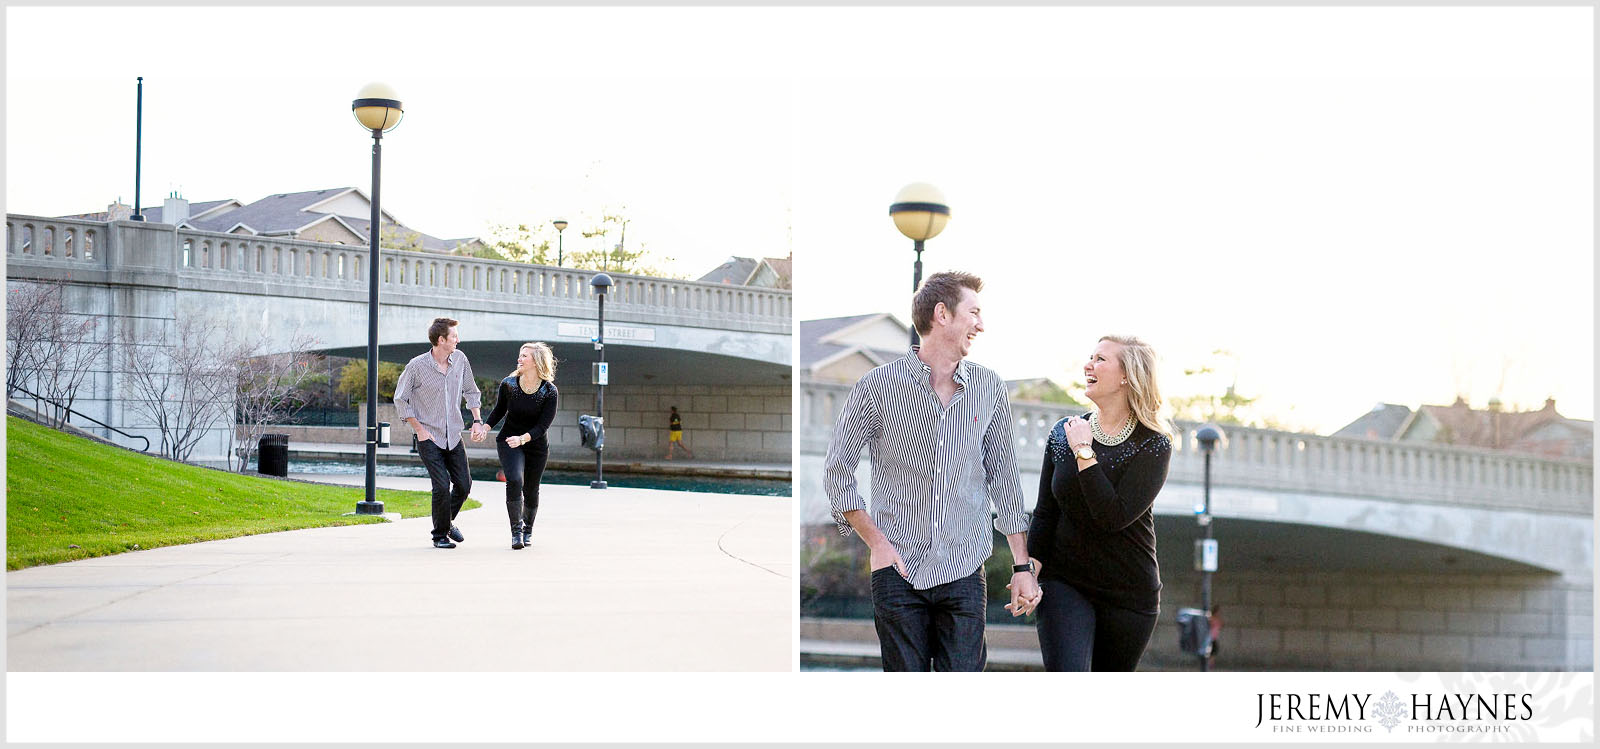 06-romantic-downtown-indiana-central-canal-indianapolis-engagement-photo-ideas.jpg